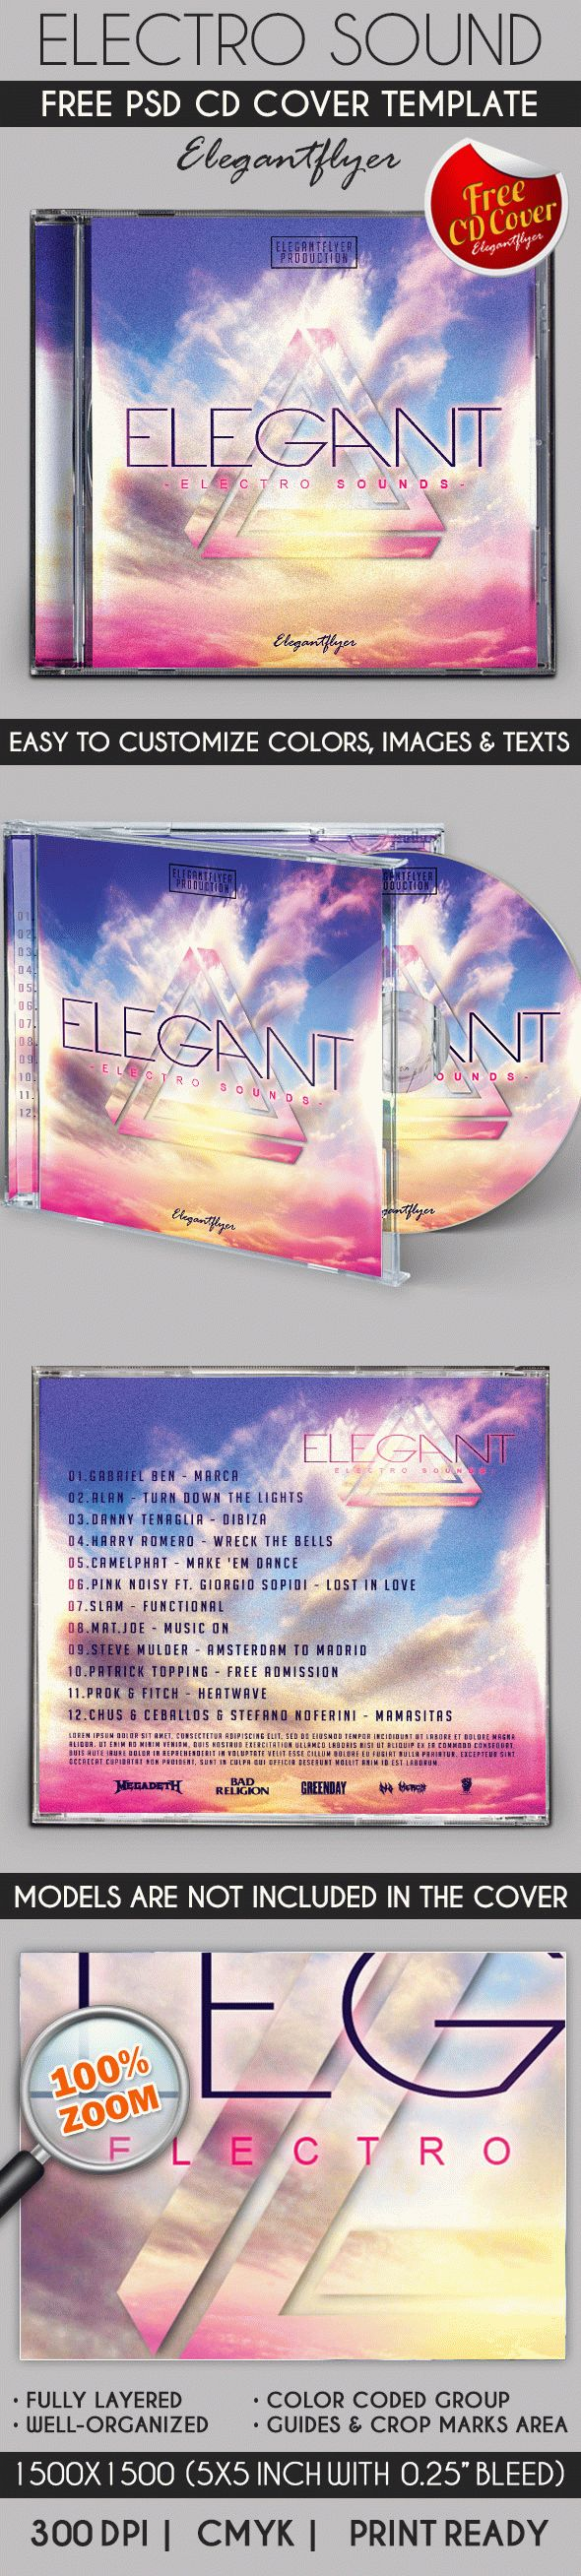 Electro Sound – Free CD Cover PSD Template